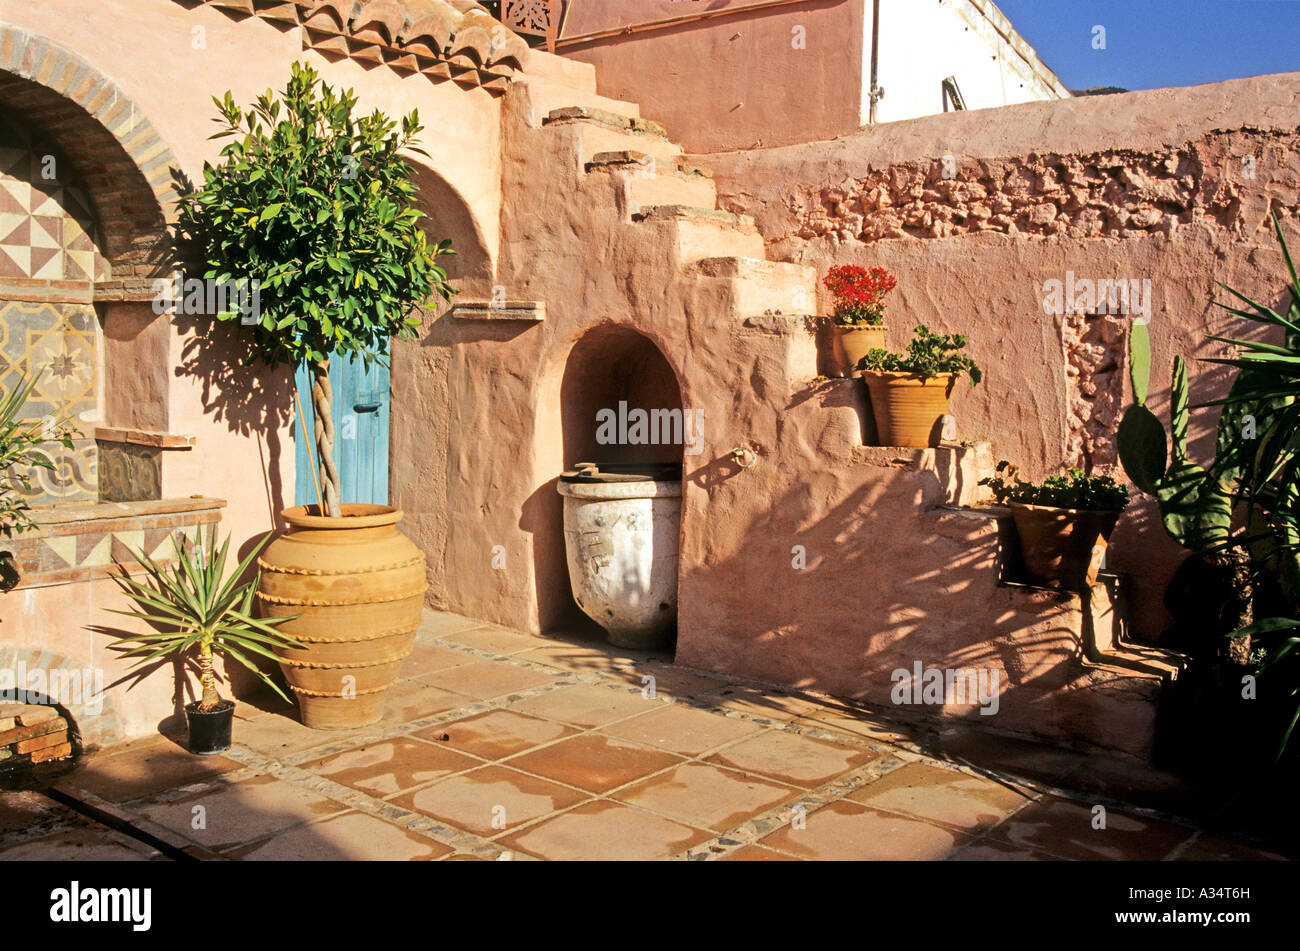 Corner Of A Spanish Patio Or Courtyard Garden At The Finca El Cerrillo  Andalusia Southern Spain Europe EU